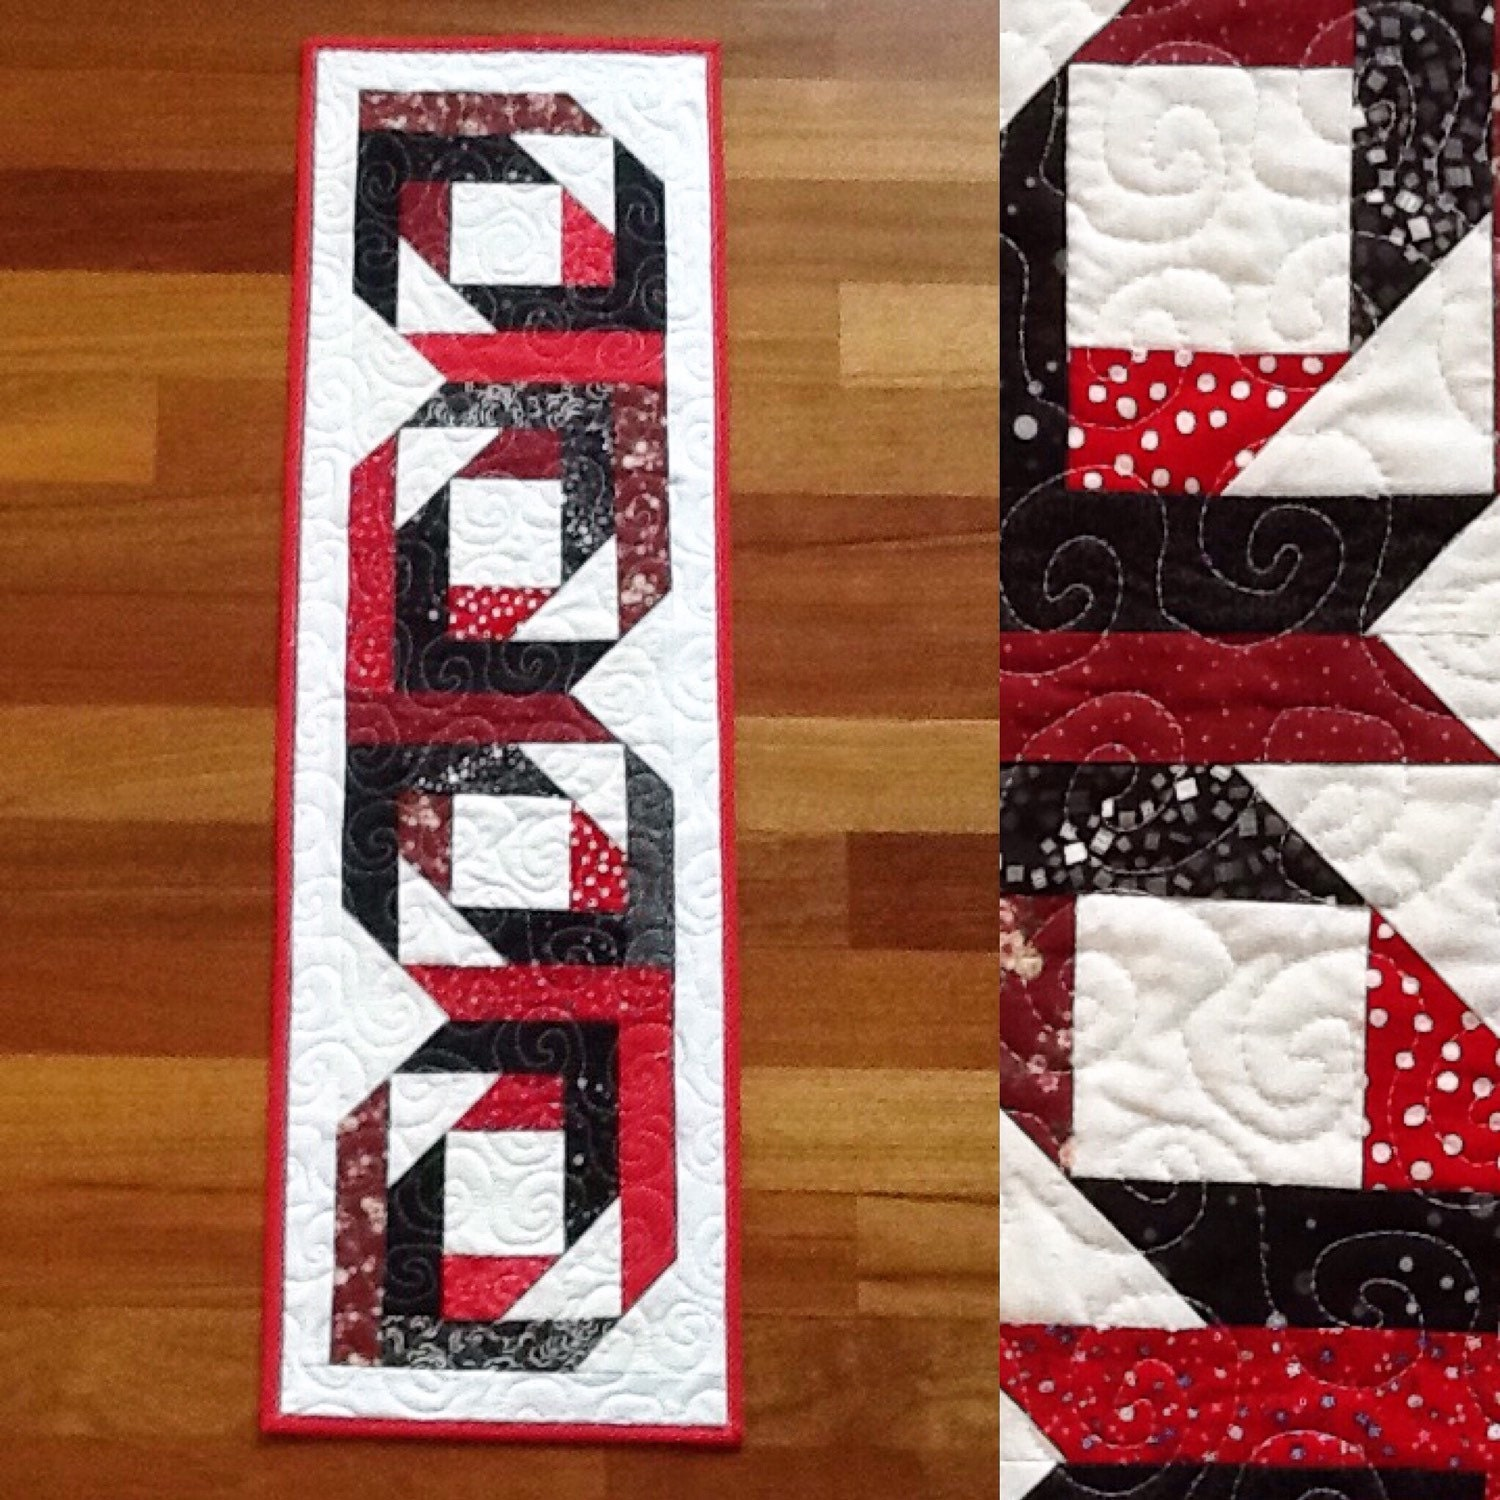 quilted black and red table runner 11 5 x 37 by sewingbyjanina. Black Bedroom Furniture Sets. Home Design Ideas